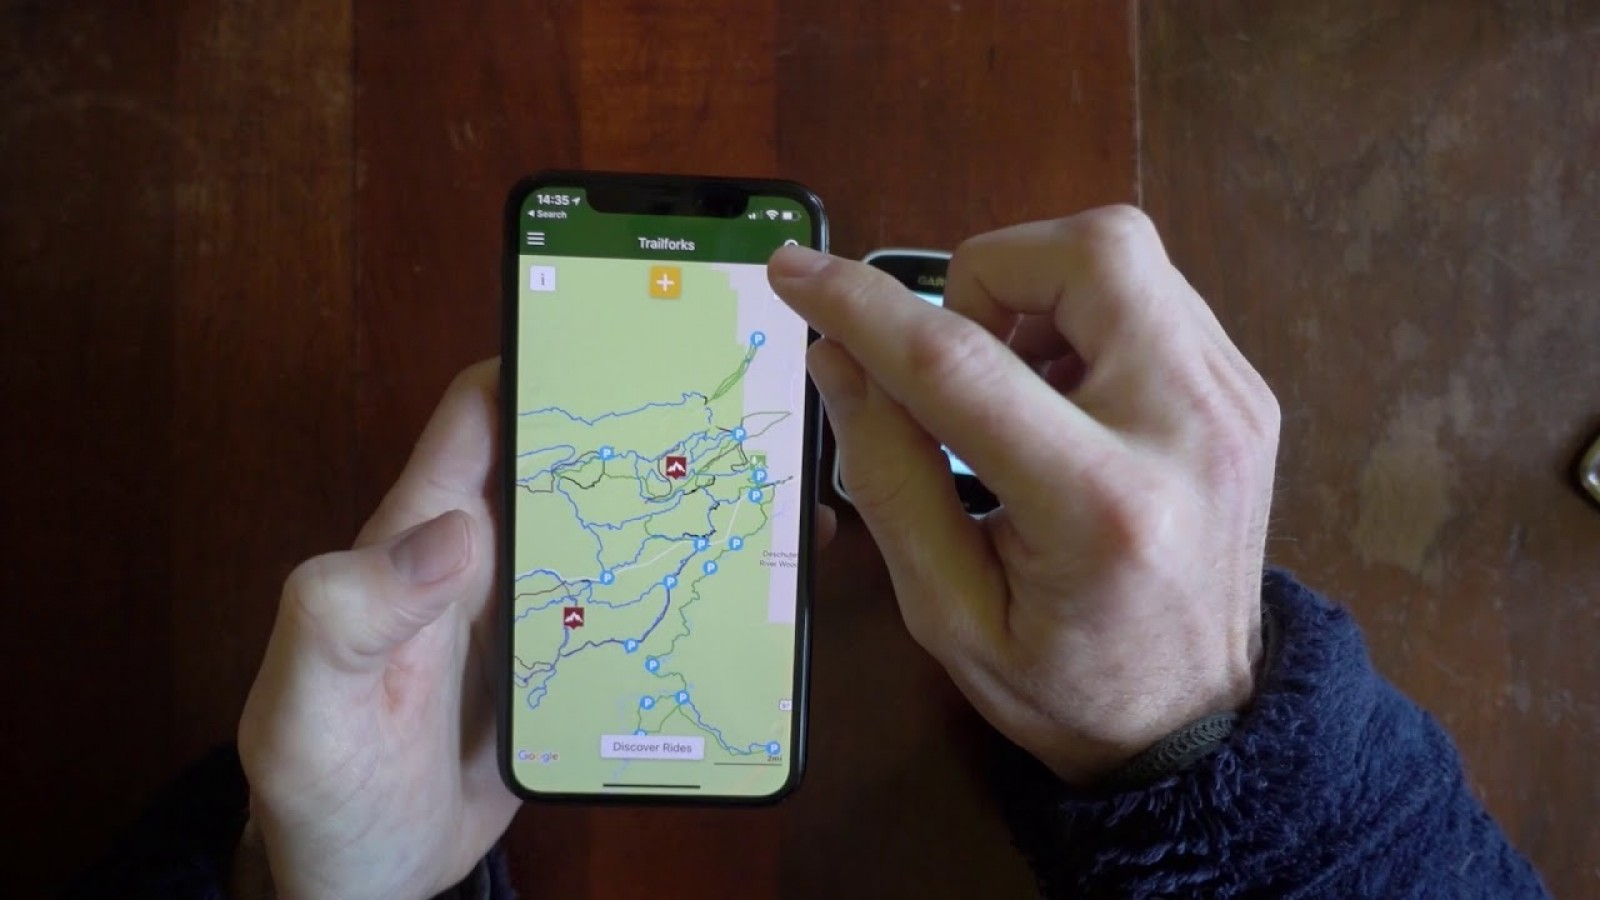 mejores-apps-ciclismo-mountain-bike/